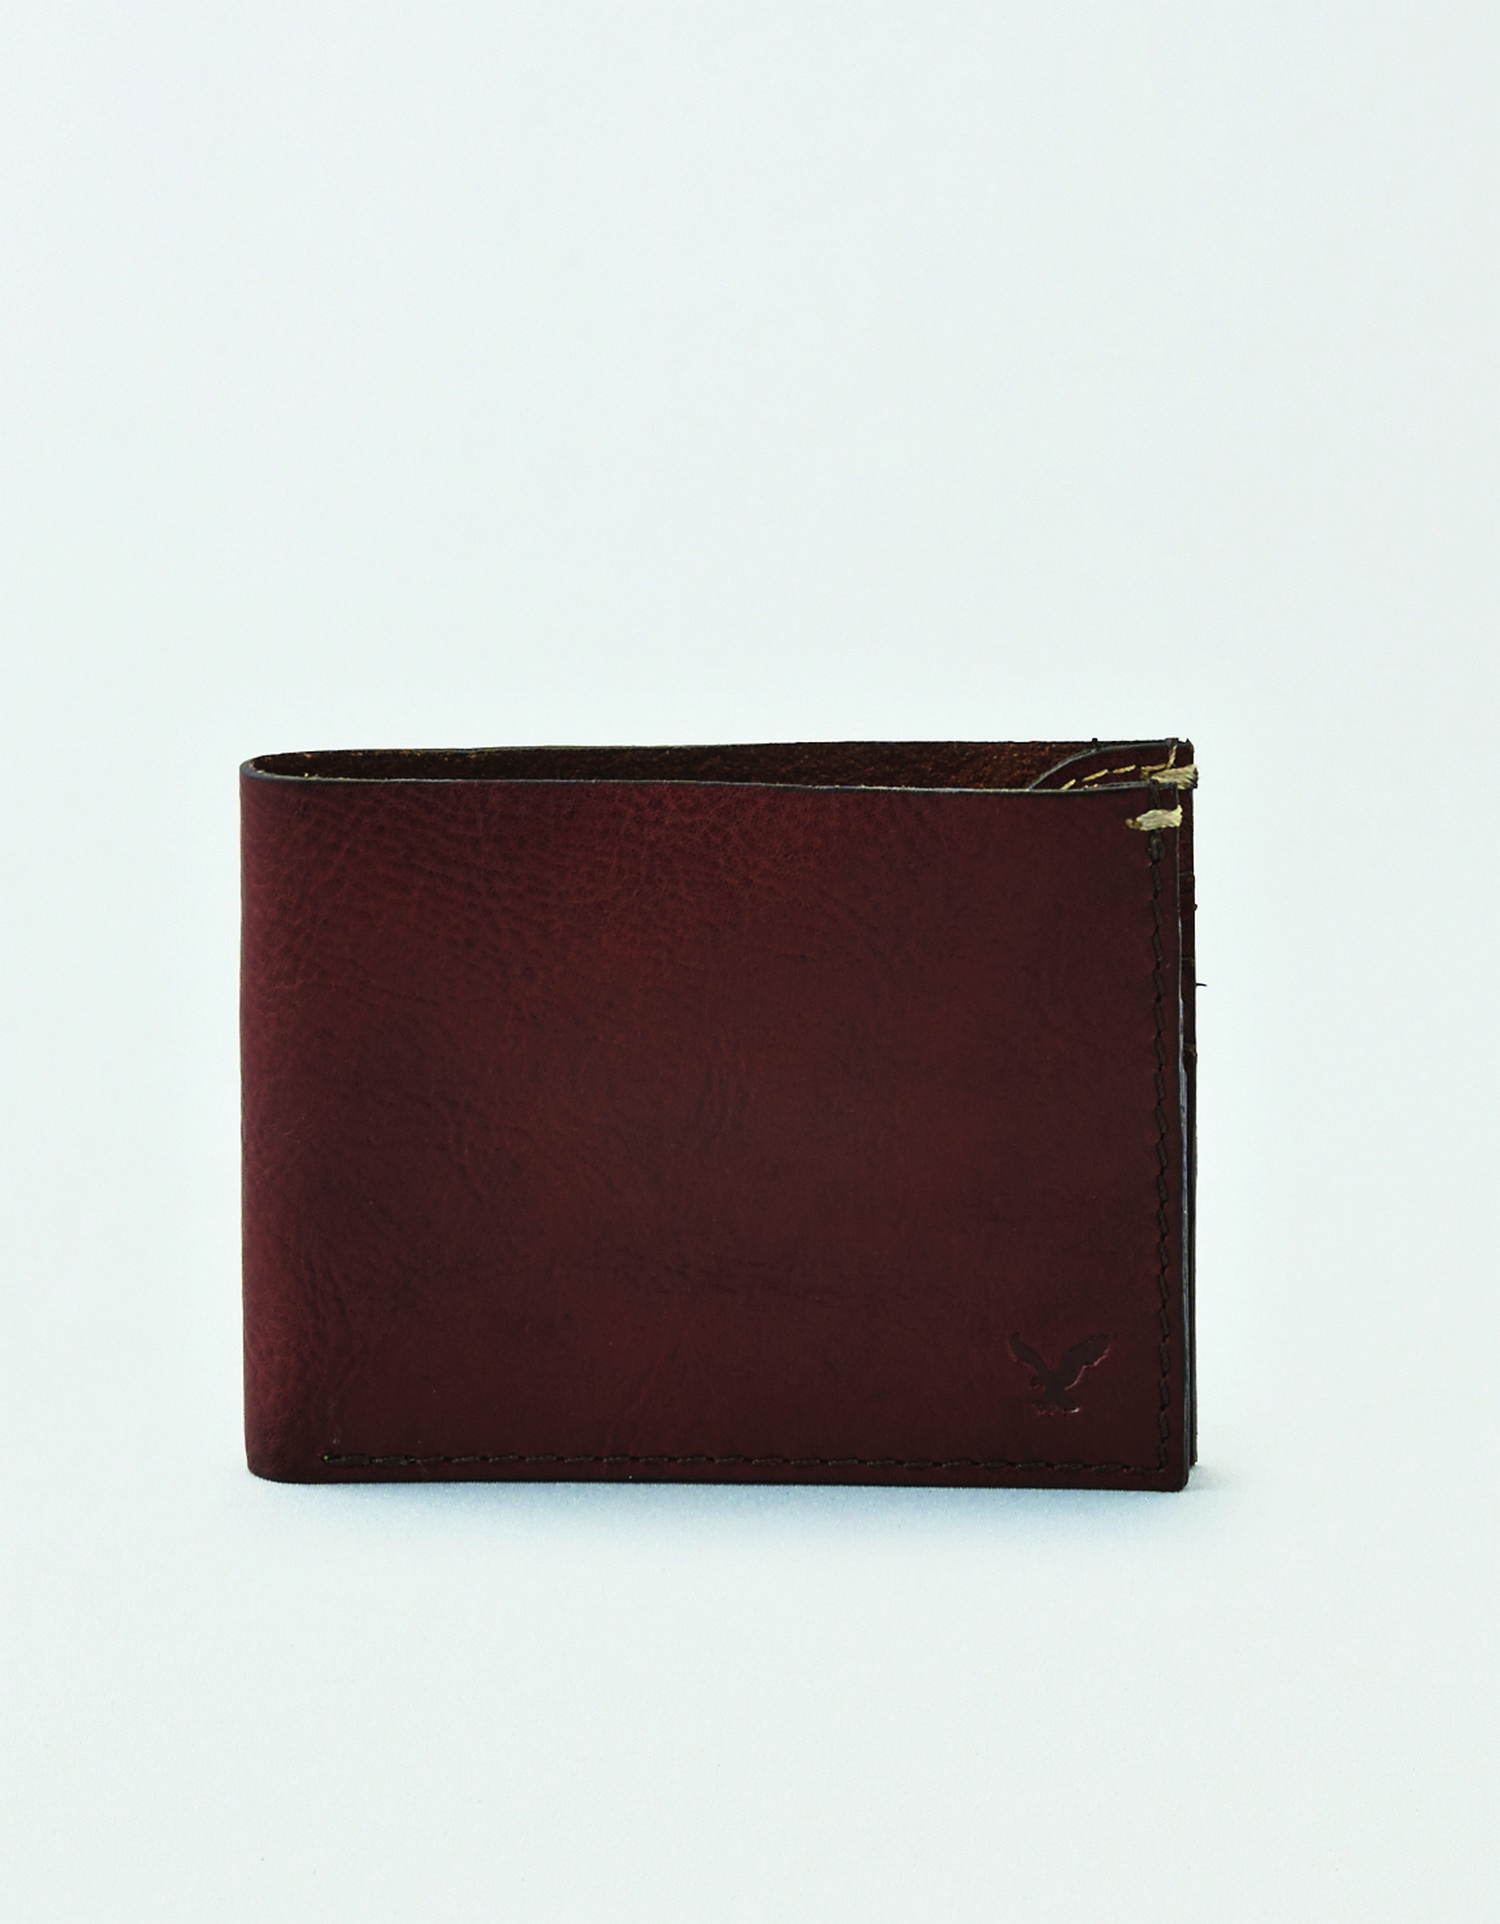 AE - M - Accessories - BIFOLD LEATHER WALLET - Dark Brown Leather - pressed small eagle on bottom right front BG *Tracked